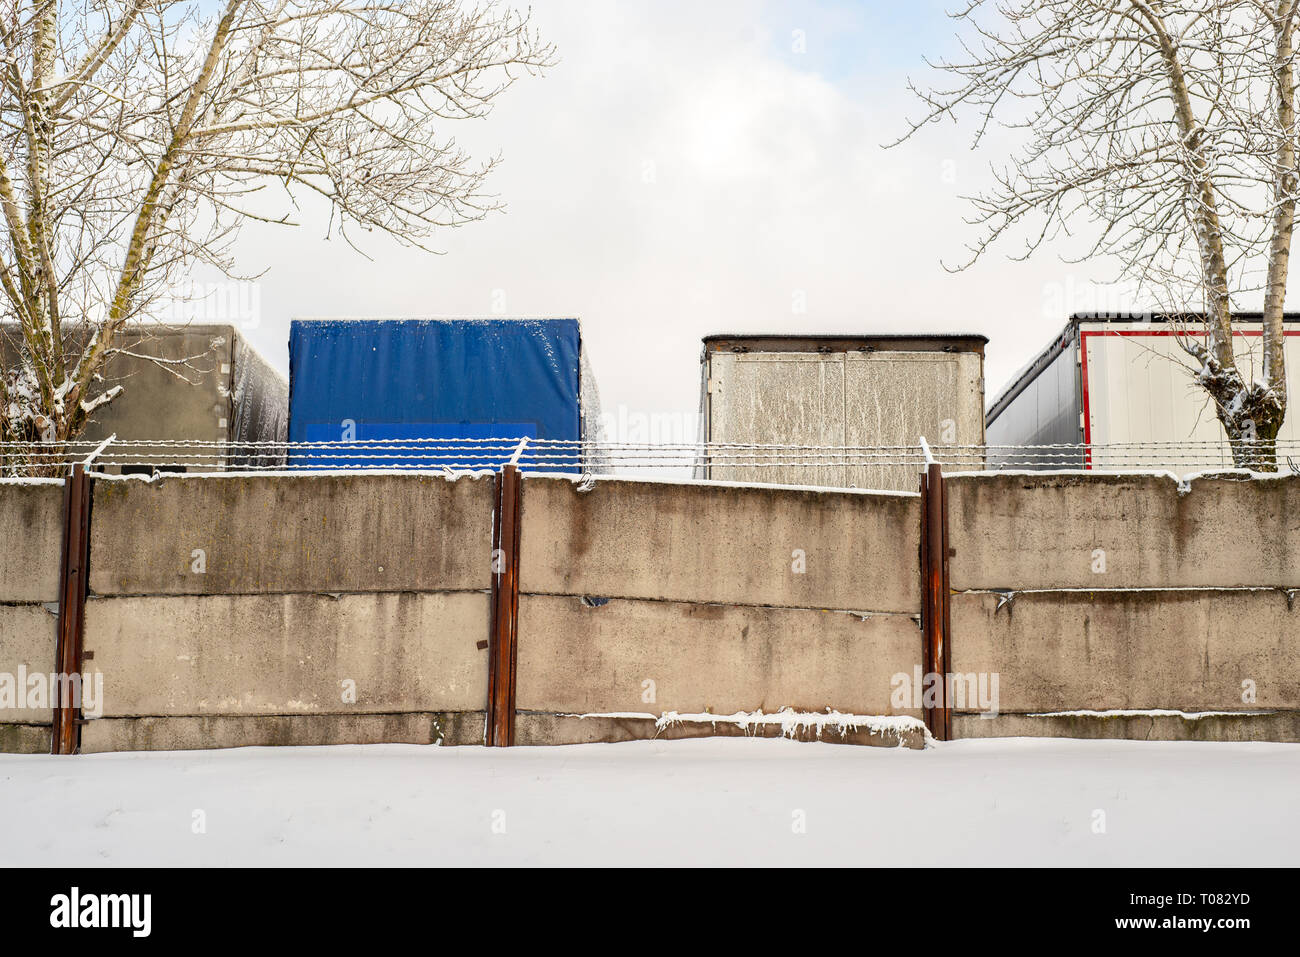 Trucks standing behind the fence wall in winter Stock Photo